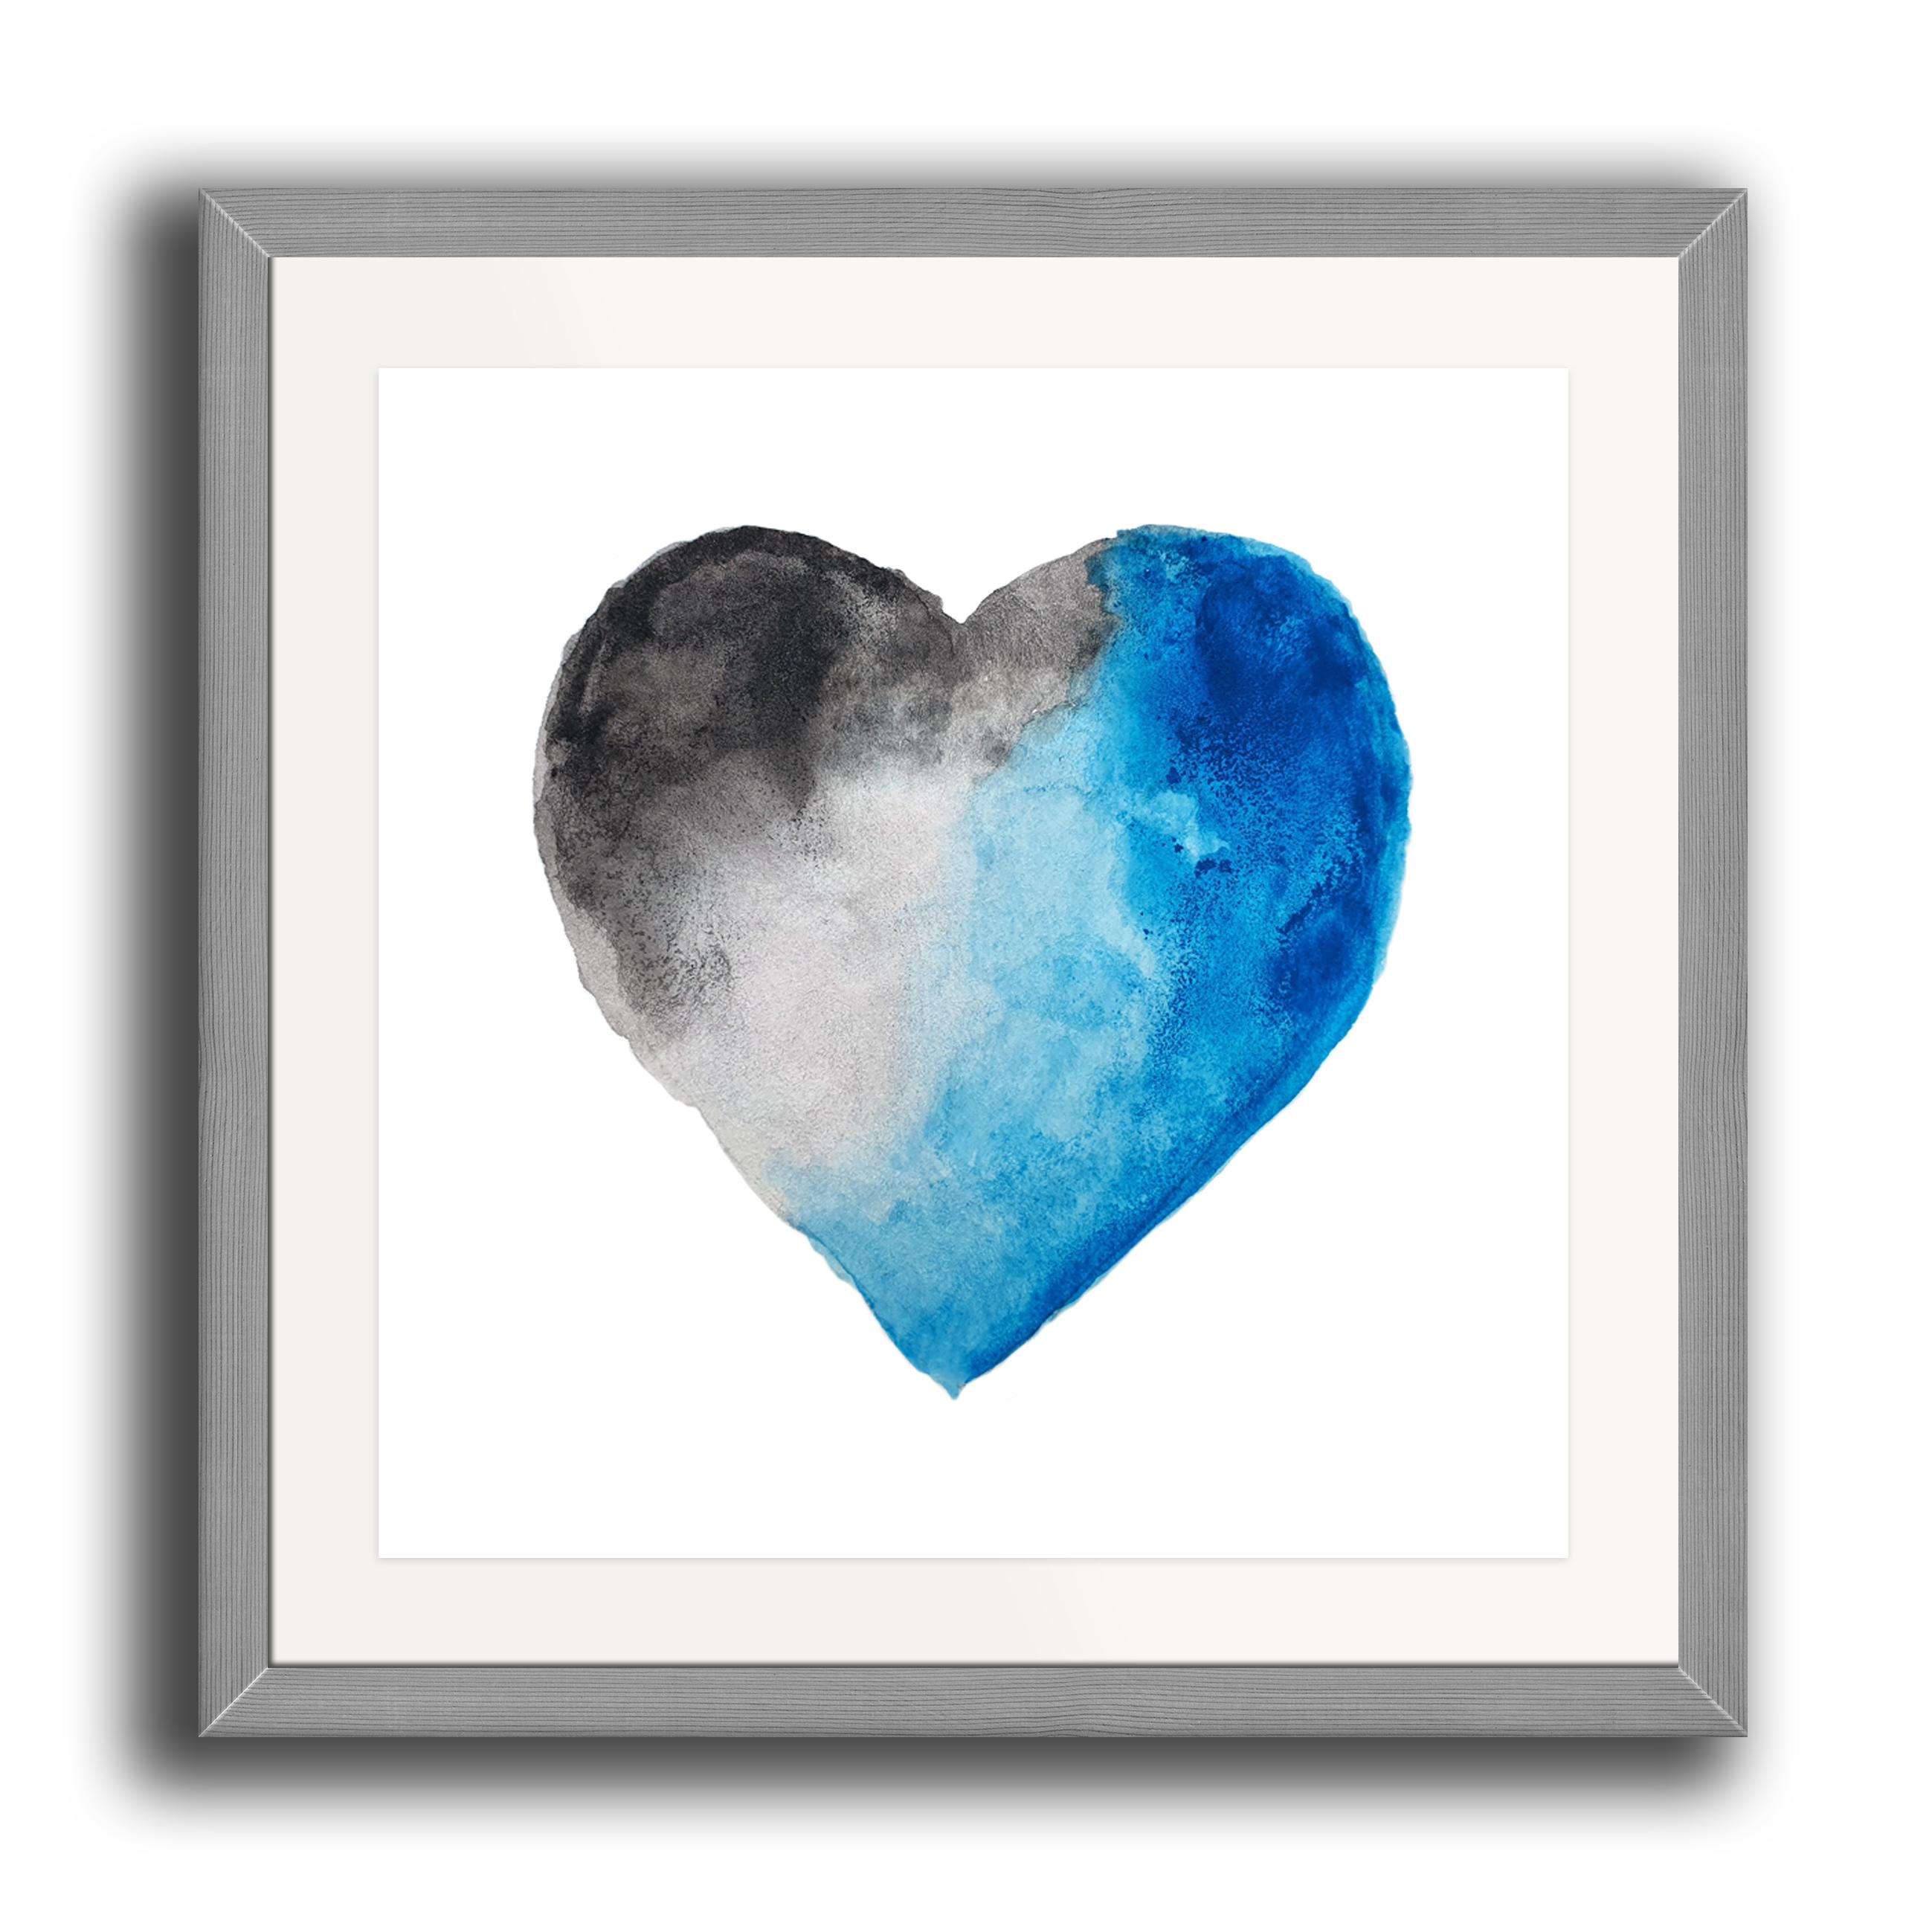 A watercolour print by Clarrie-Anne on eco fine art paper titled Thunder Heart showing a blue and greyscale watercolour heart on a white background. The image is set in a grey coloured picture frame.